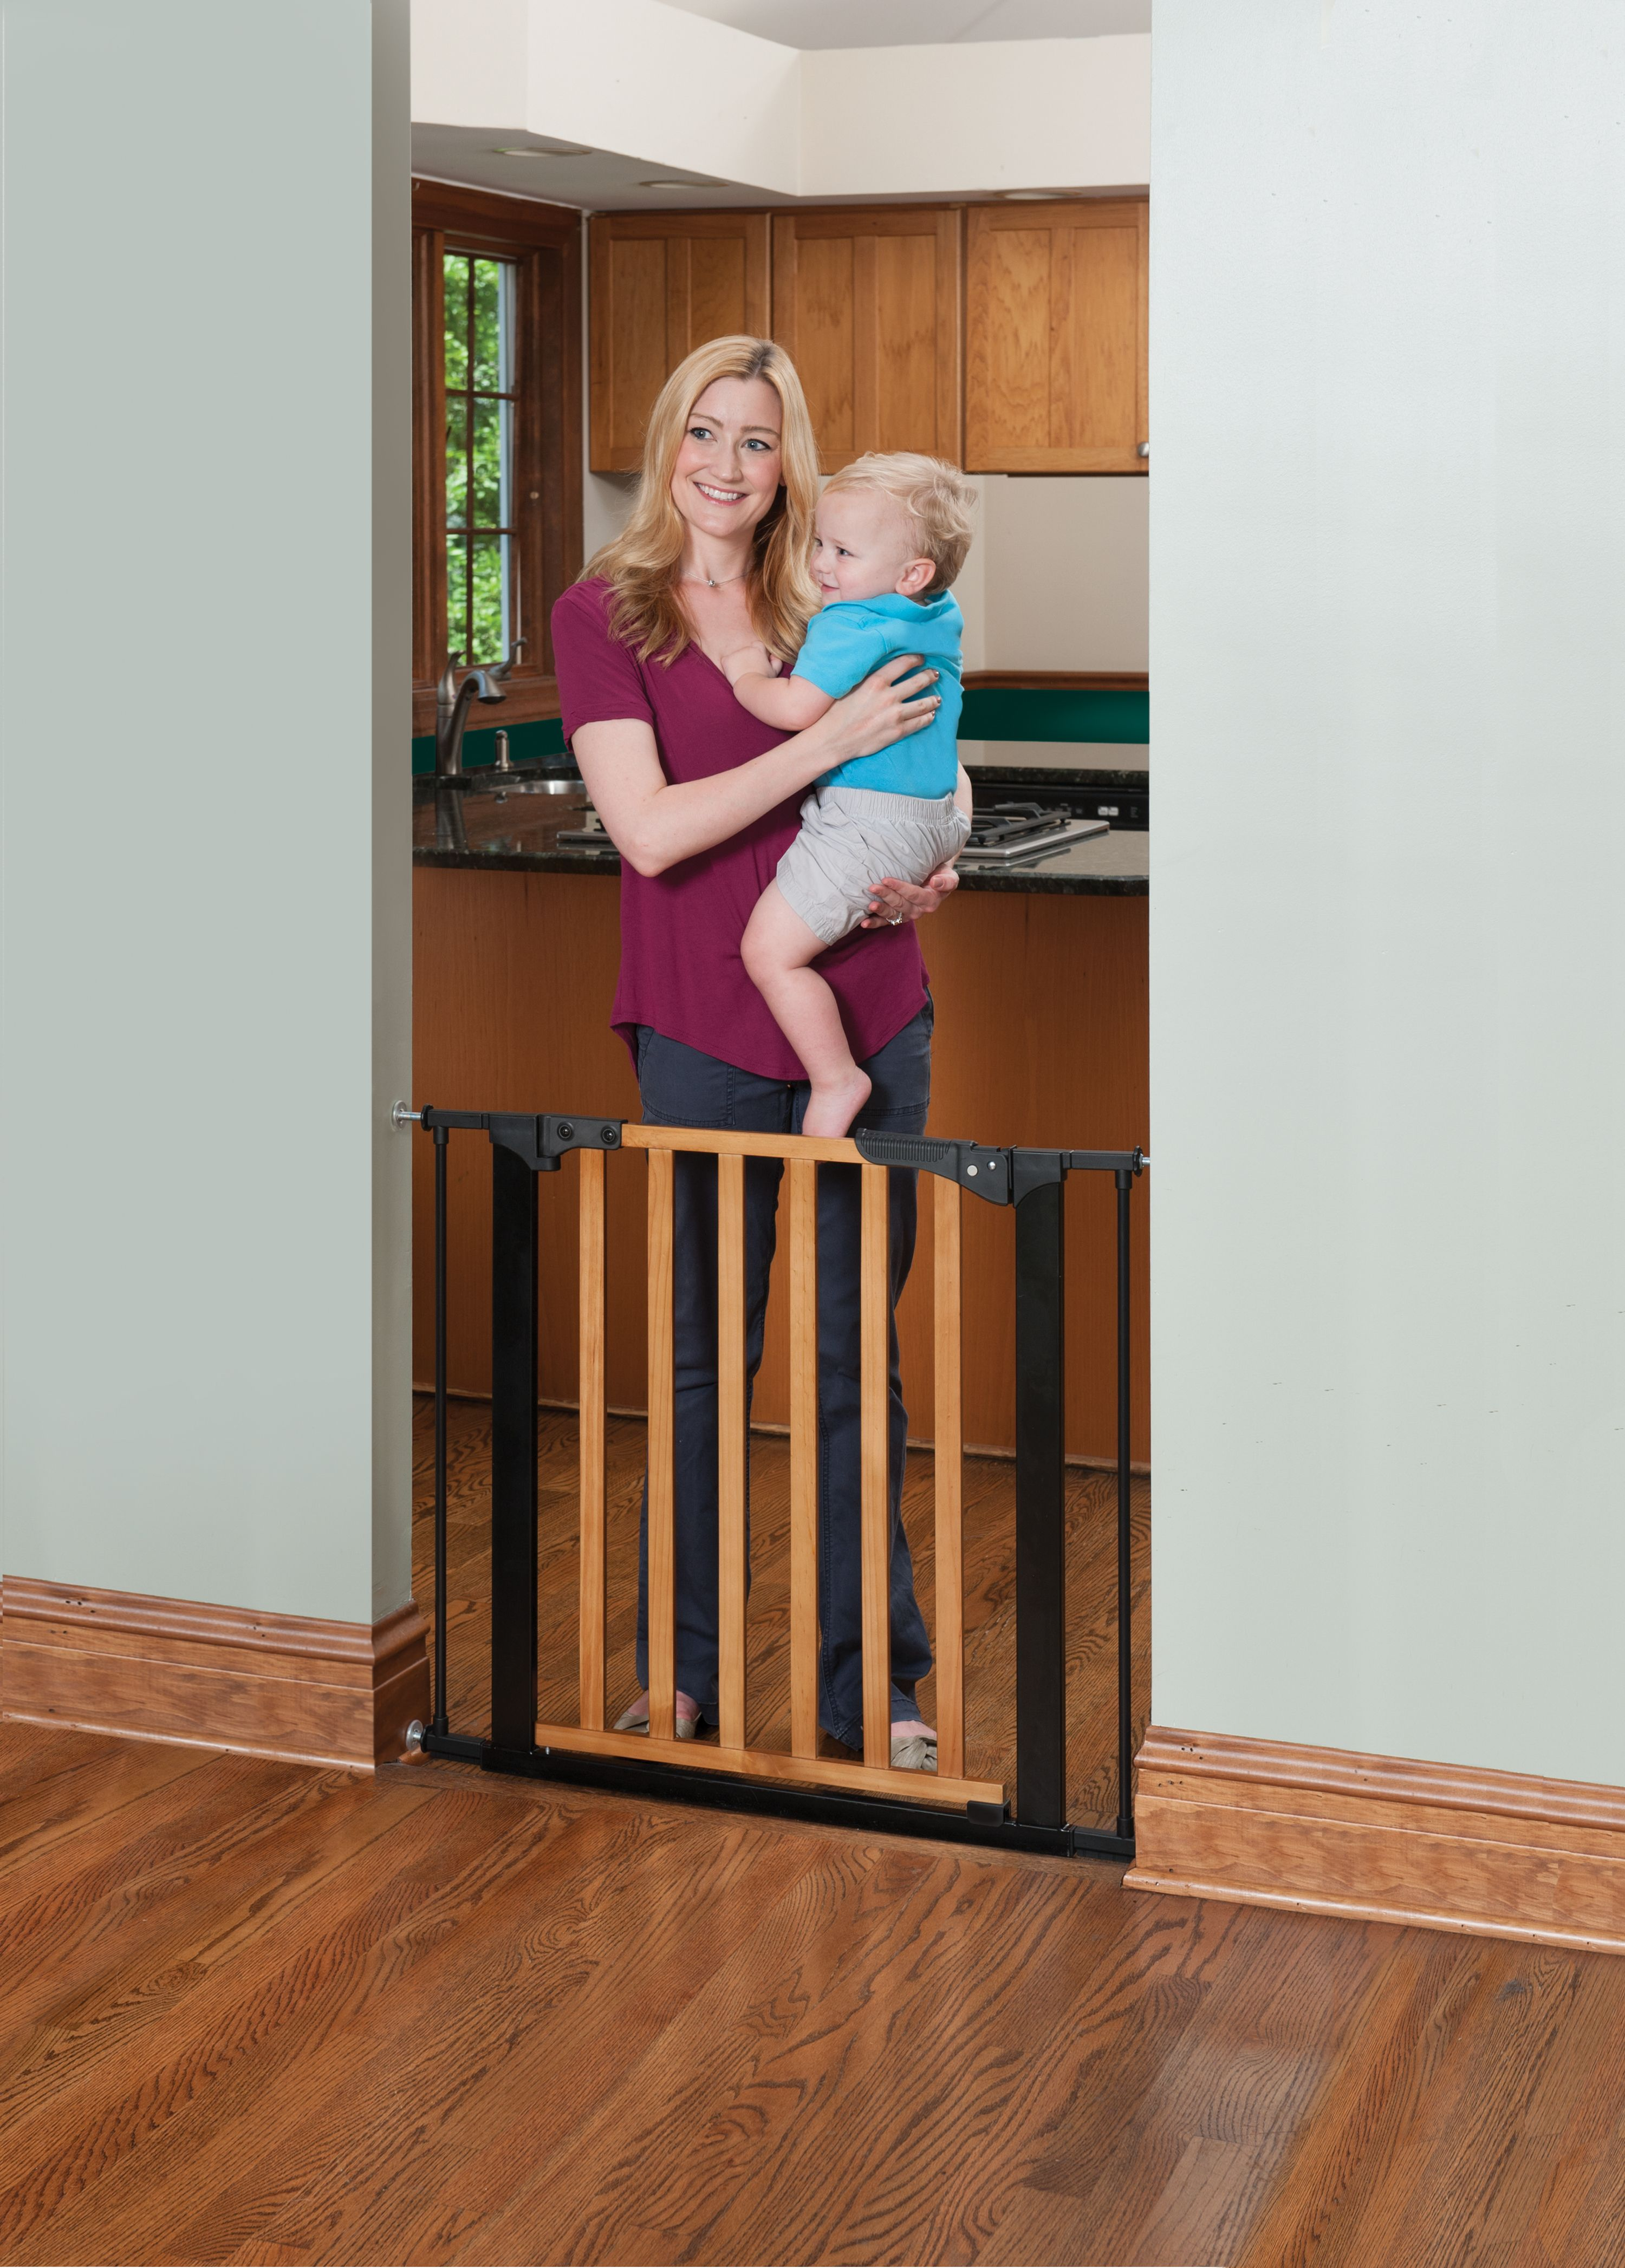 Kidco Designer Gateway Pressure Mount Gate Is Perfect For Heavily